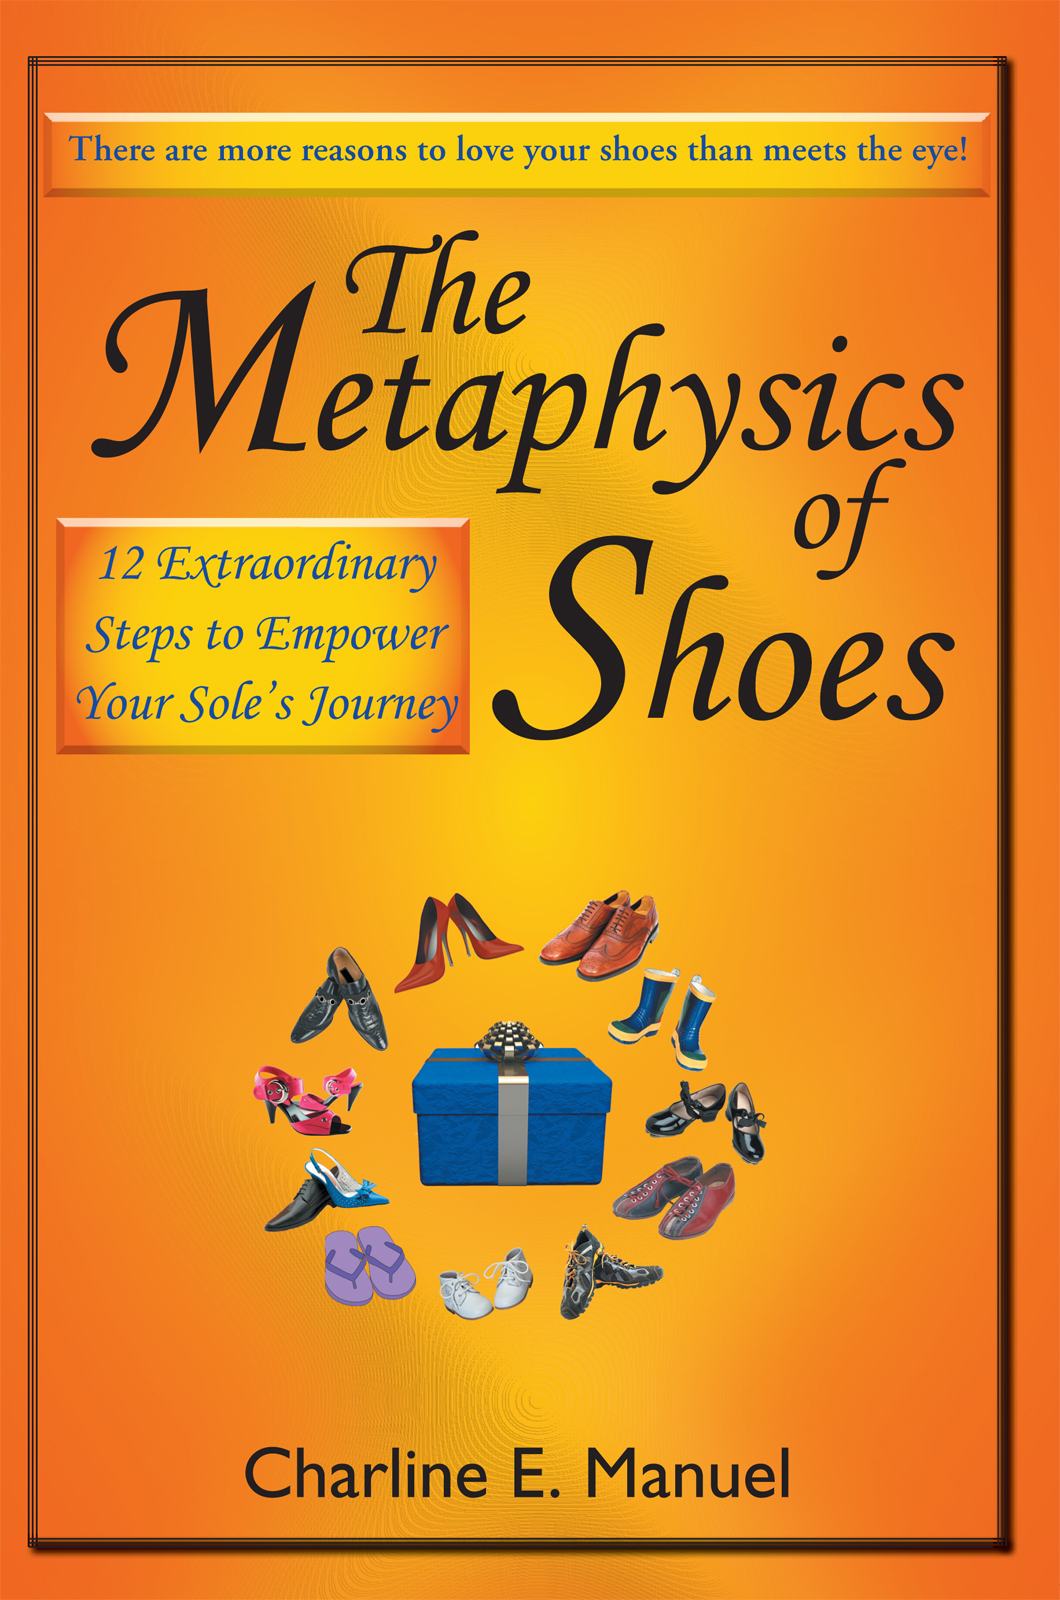 The Metaphysics of Shoes